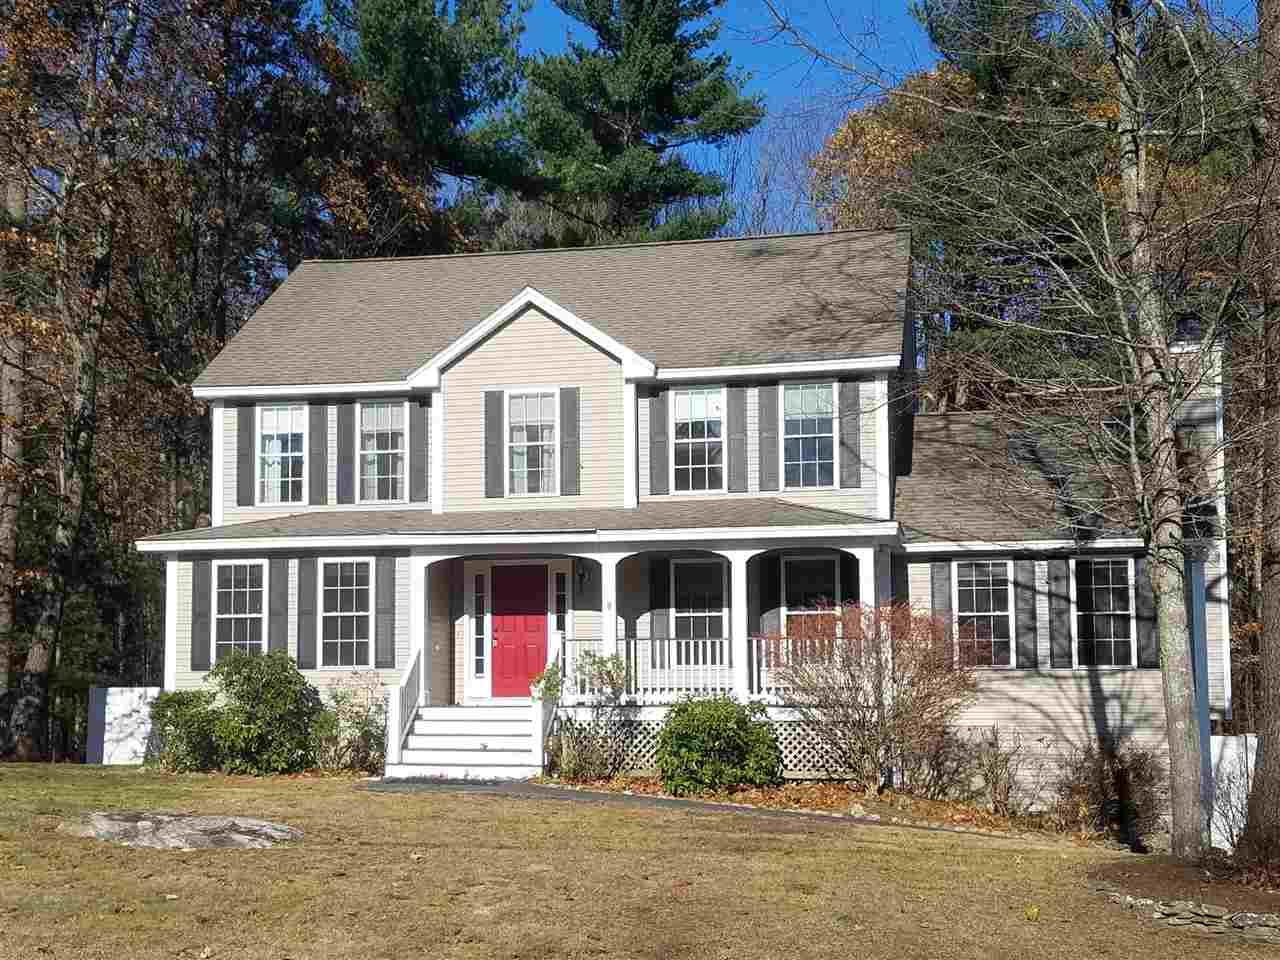 MLS 4785370: 55 Woodhawk Drive, Milford NH